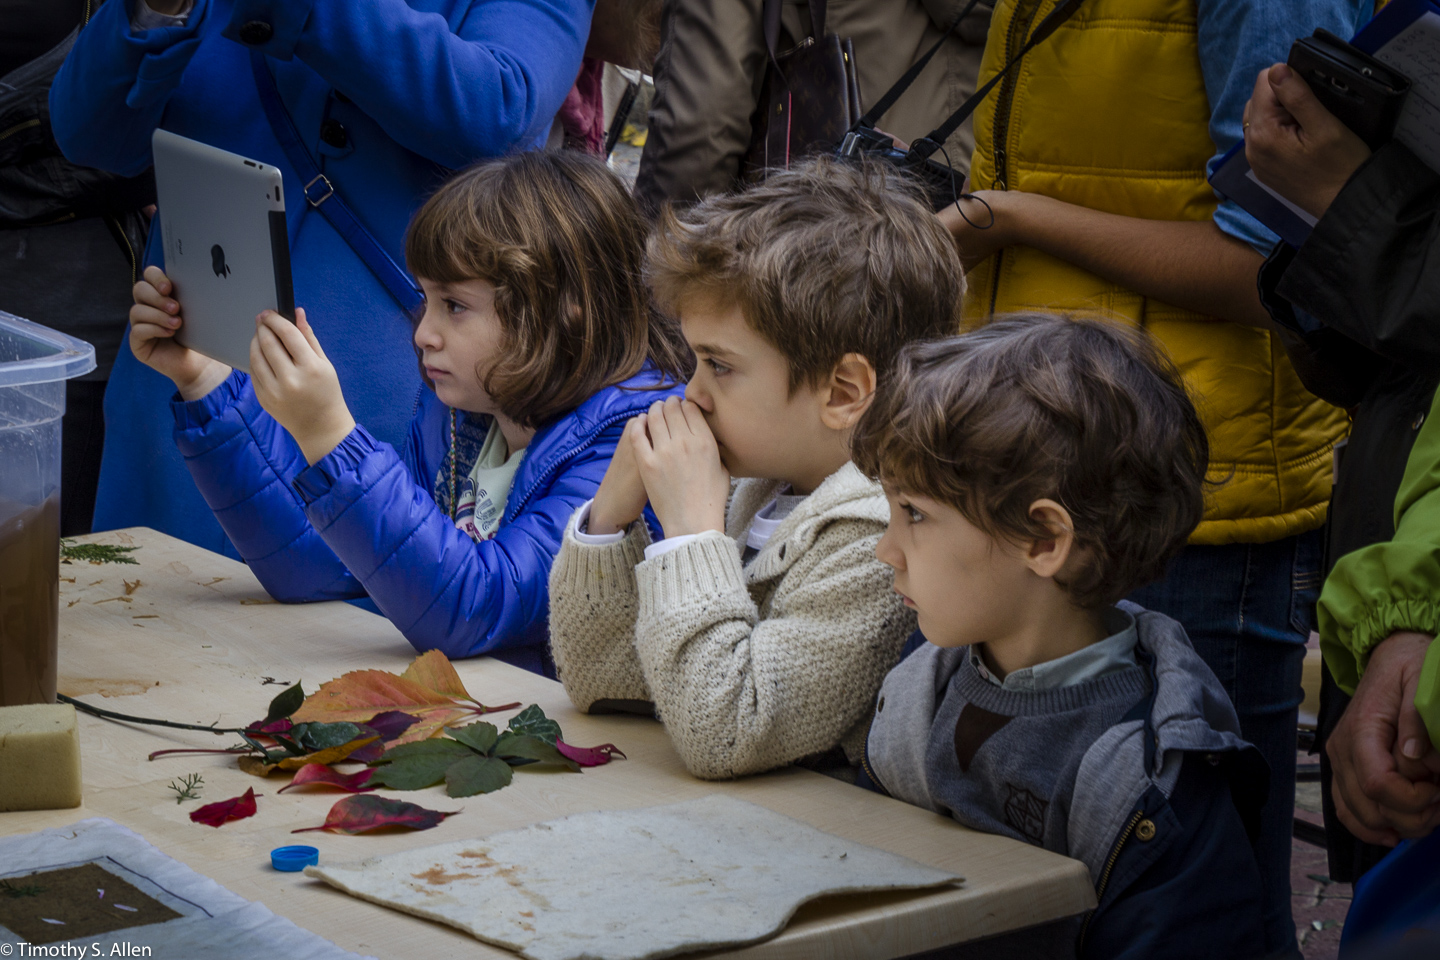 Children Attending the Papermaking Workshop, Museum of Paper and Book Arts by Jane Ingram Allen This Workshop is Part of Allen's Fulbright Specialist Project. Ege University, Izmir, Turkey November 29, 2015